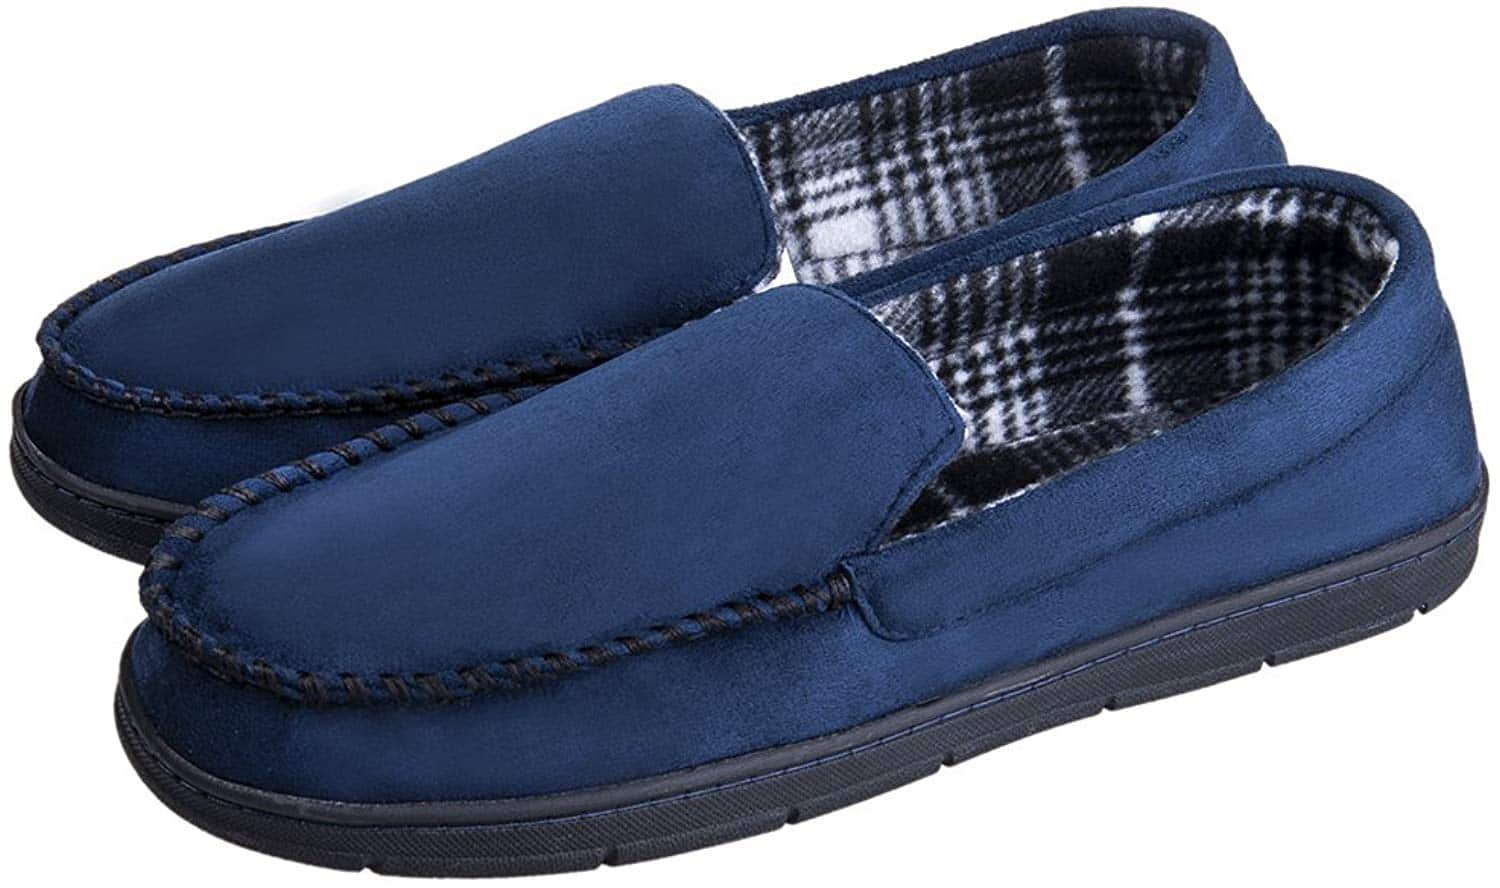 Mens Casual Moccasins Anti Slip Rubber Sole Comfortable Cozy Driving Loafers Indoor Outdoor Slippers $8.99 @ Amazon